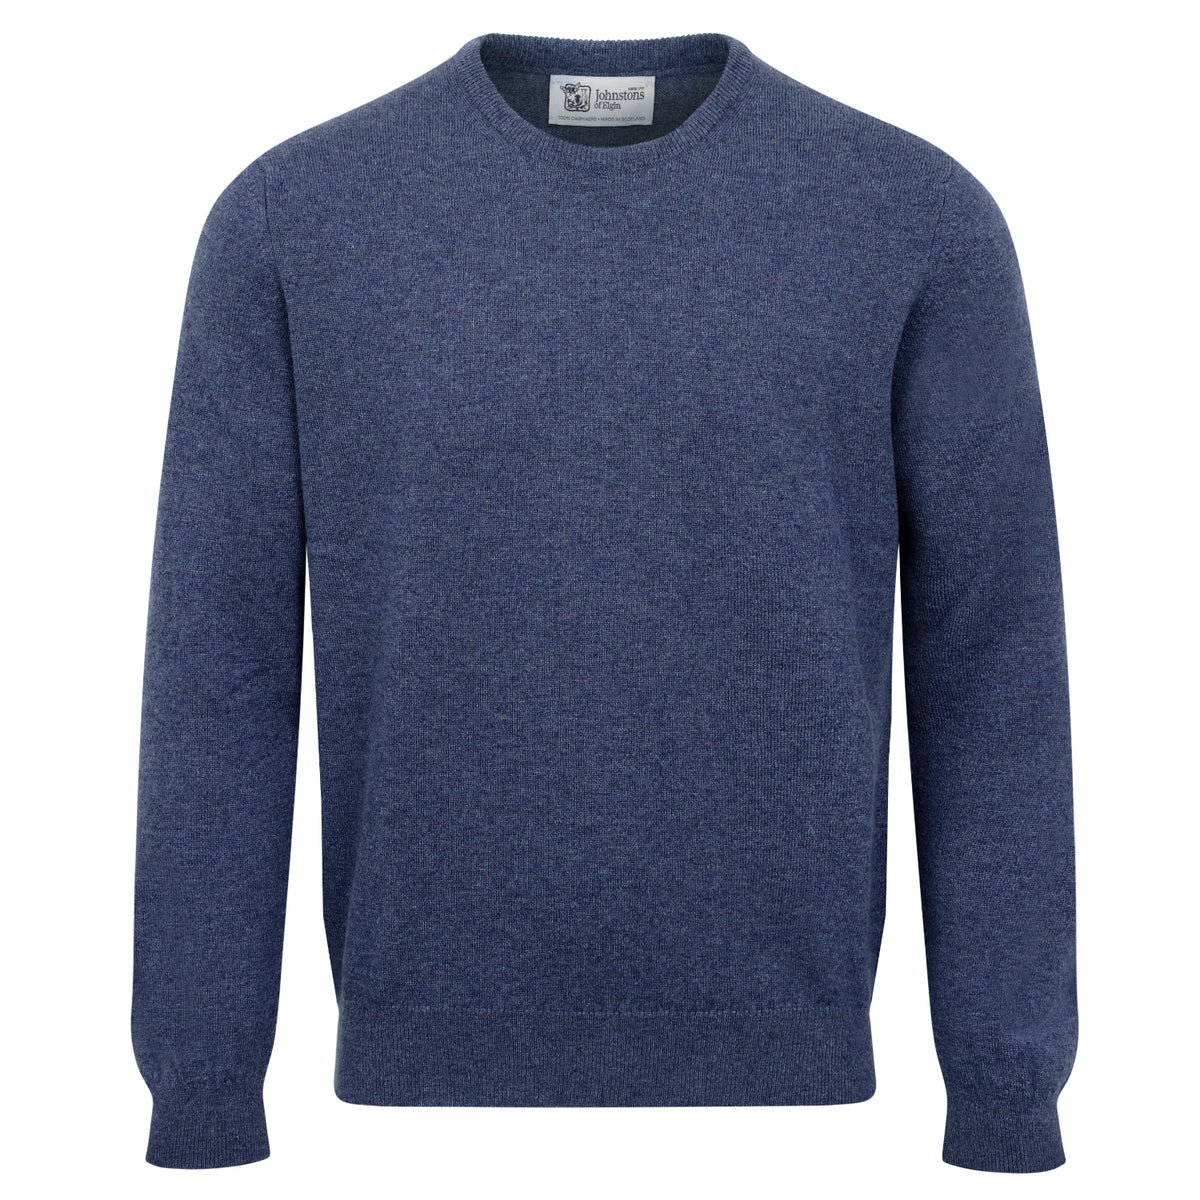 Johnstons of Elgin | Mens 2-Ply Cashmere Round Neck | Blue | Shop now at The Cashmere Choice | London